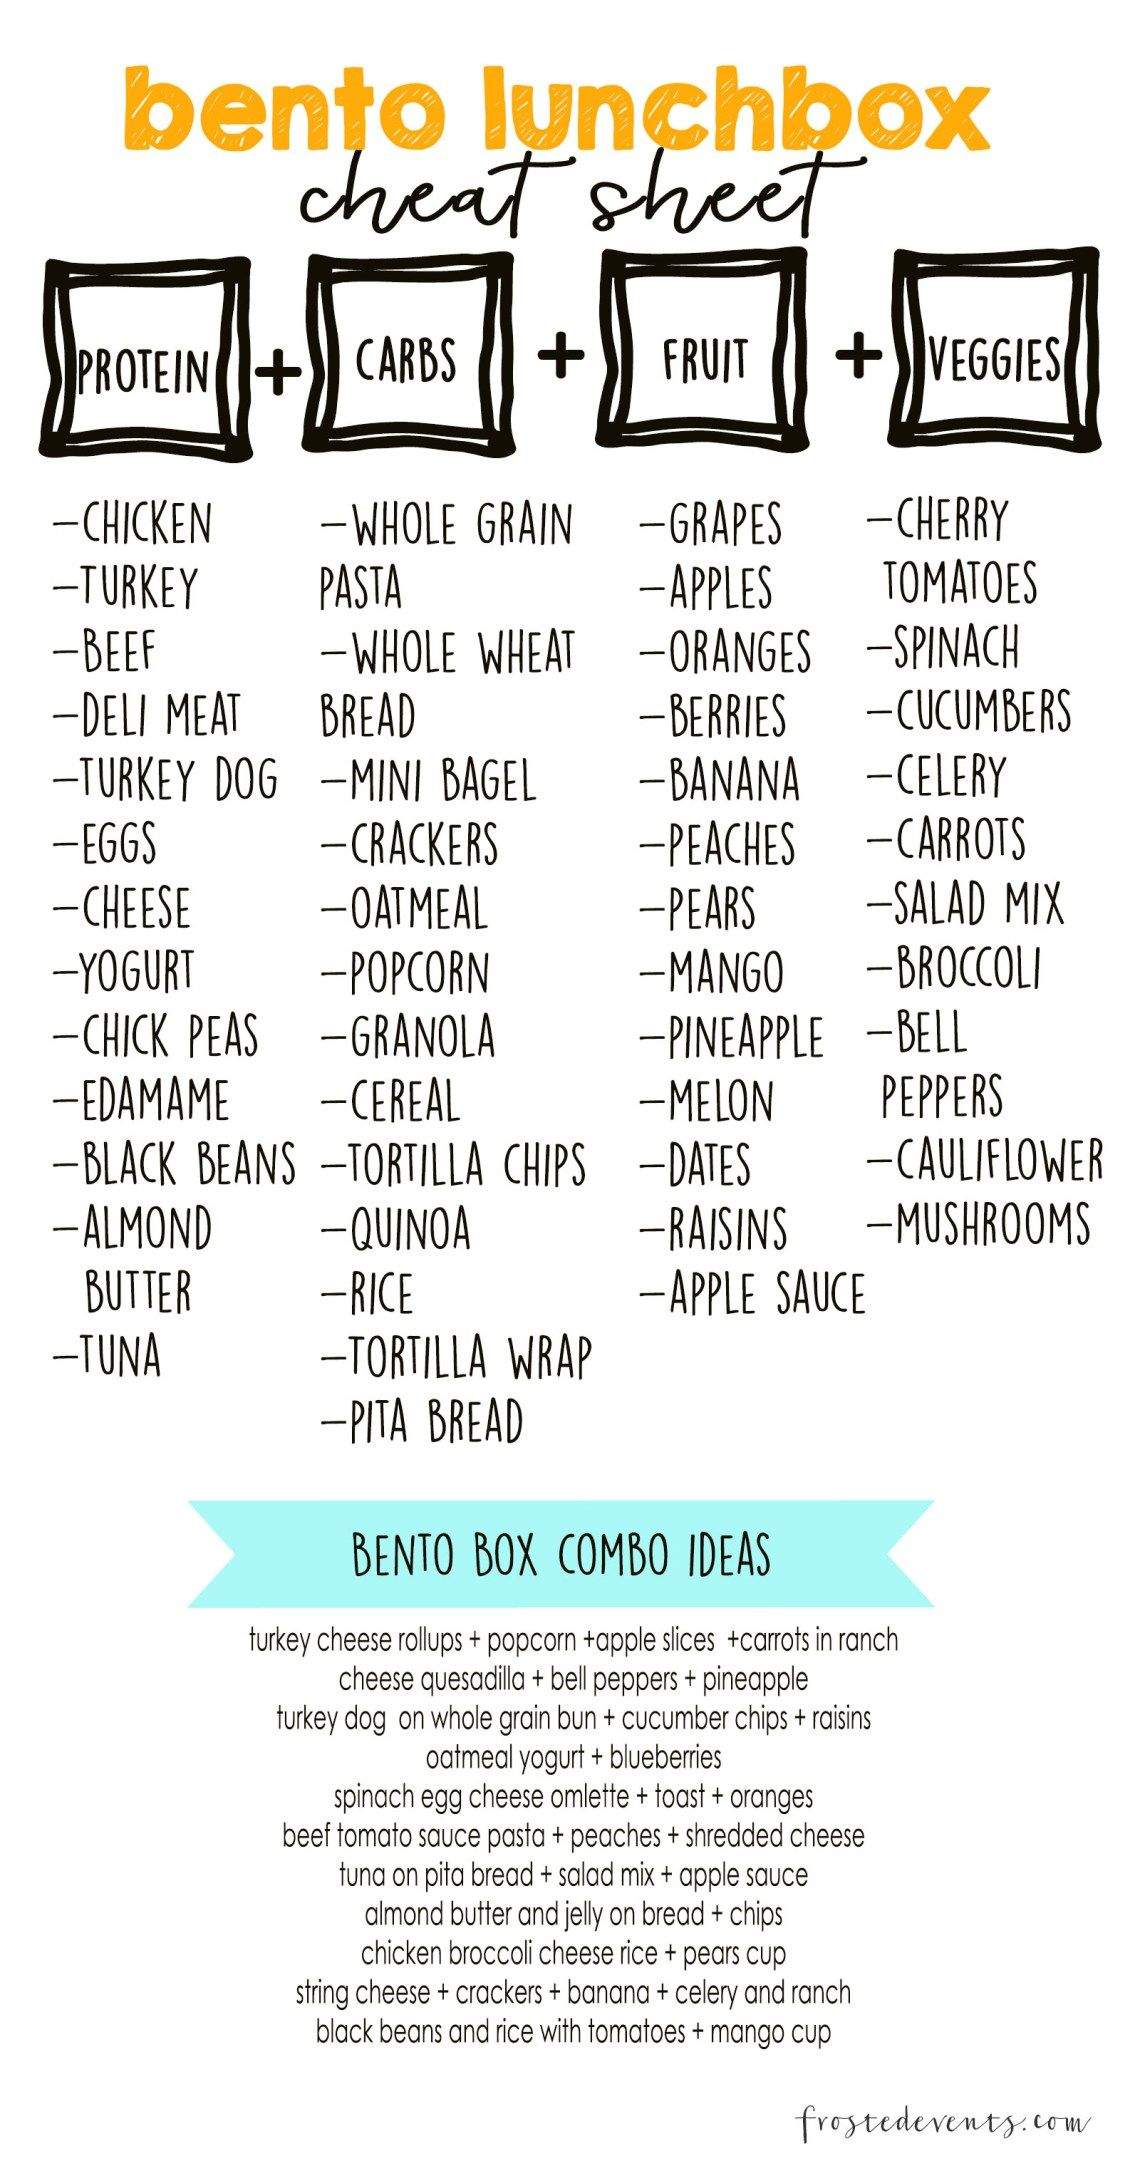 Bento Box Lunch Ideas Cheat Sheet